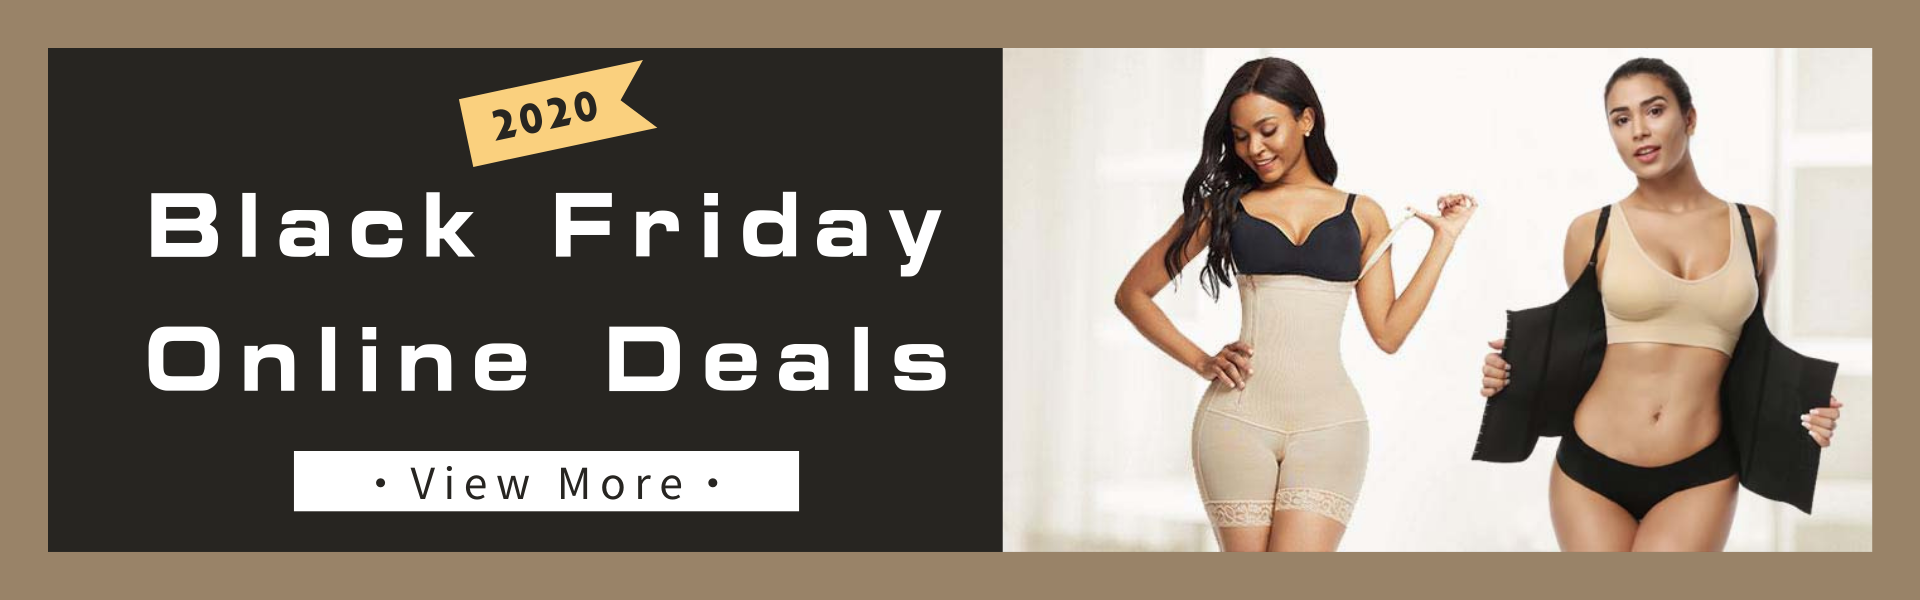 Black Friday Shapewear Discount Deals